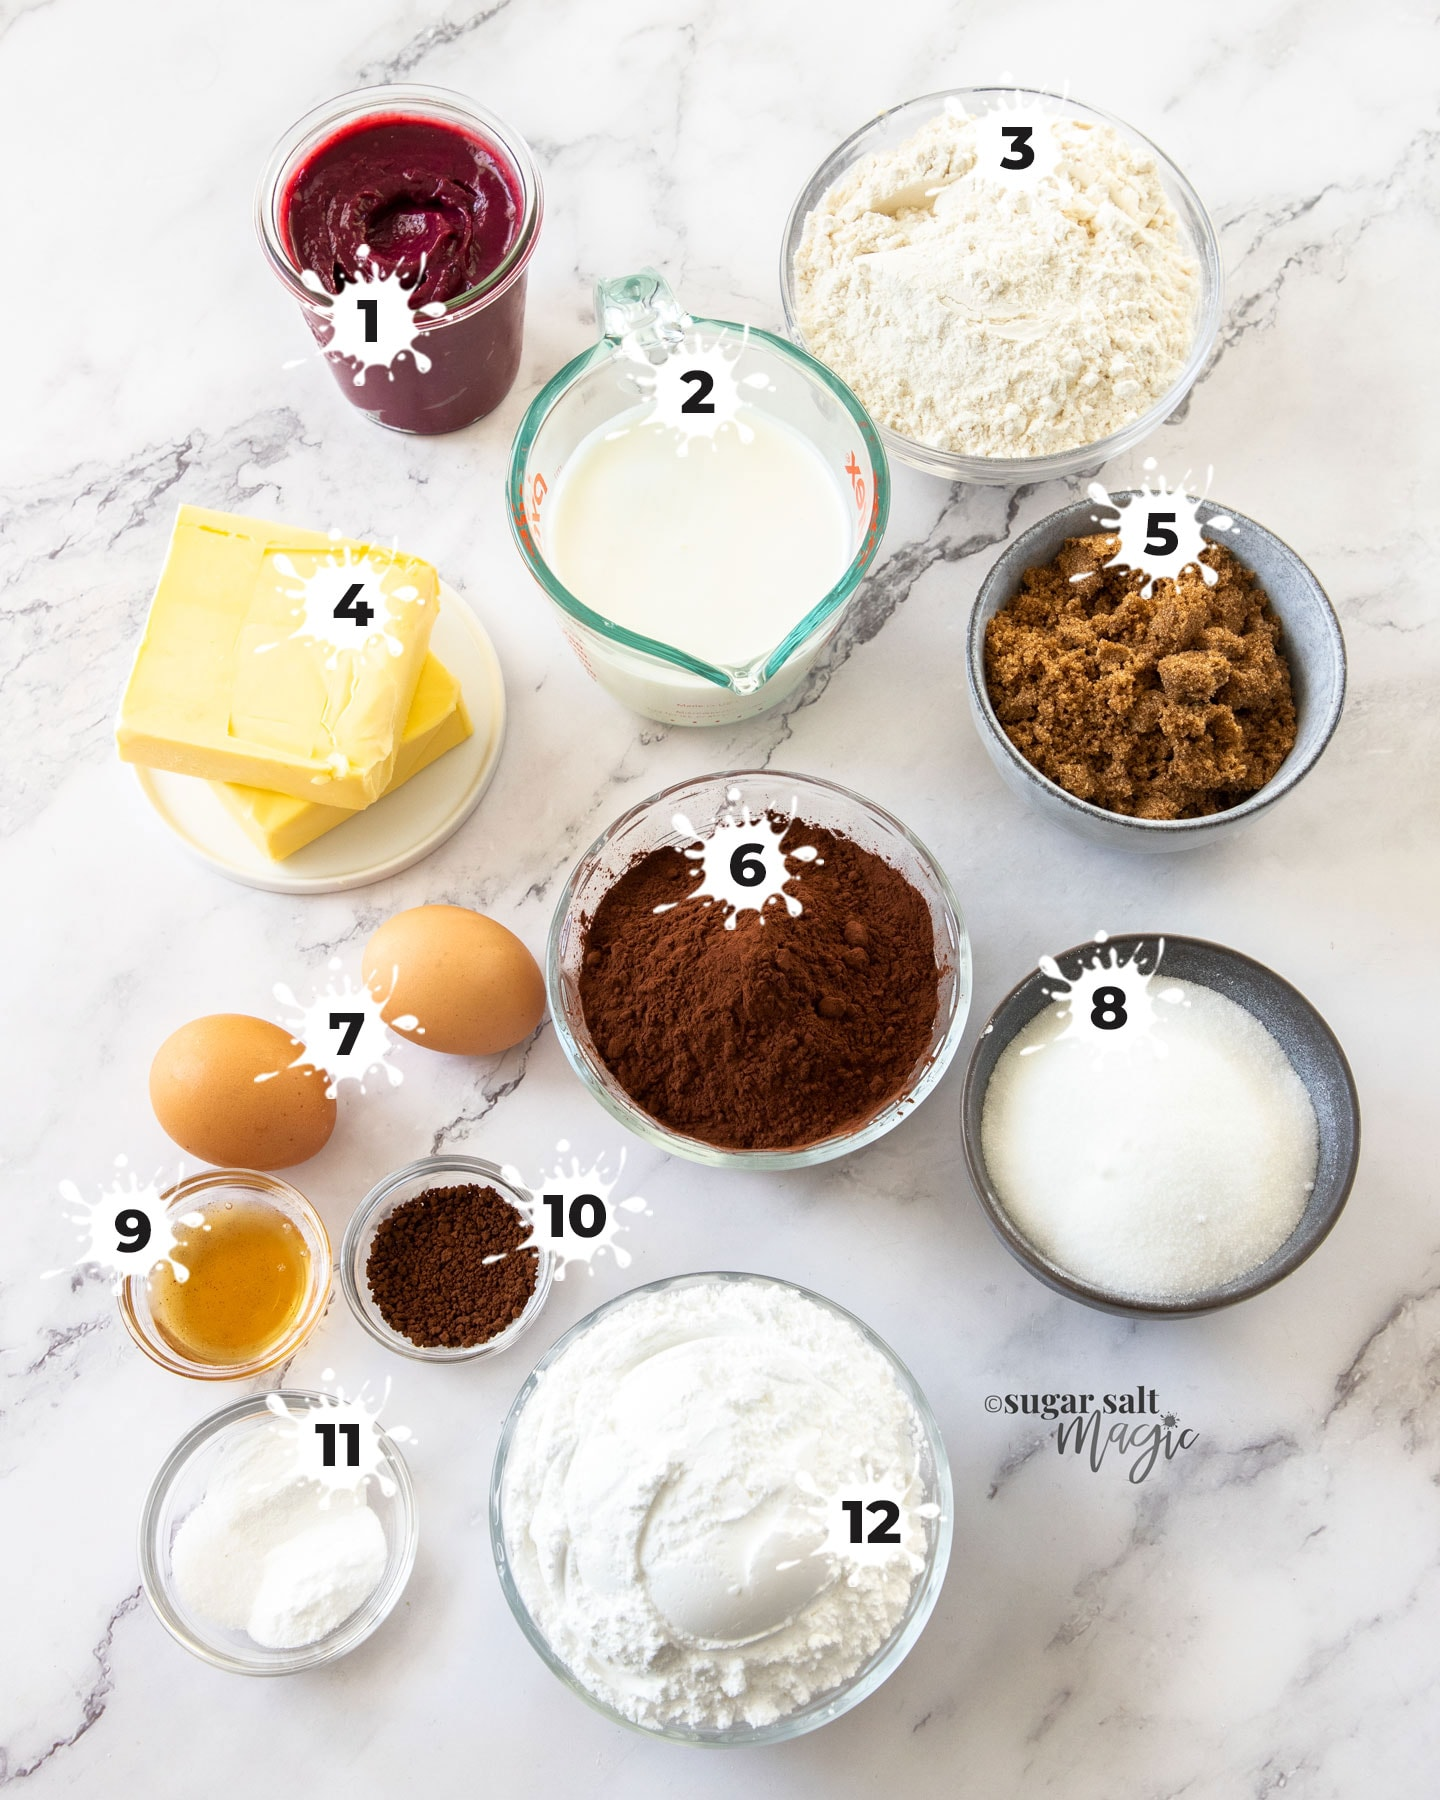 Ingredients for chocolate cake on a marble surface